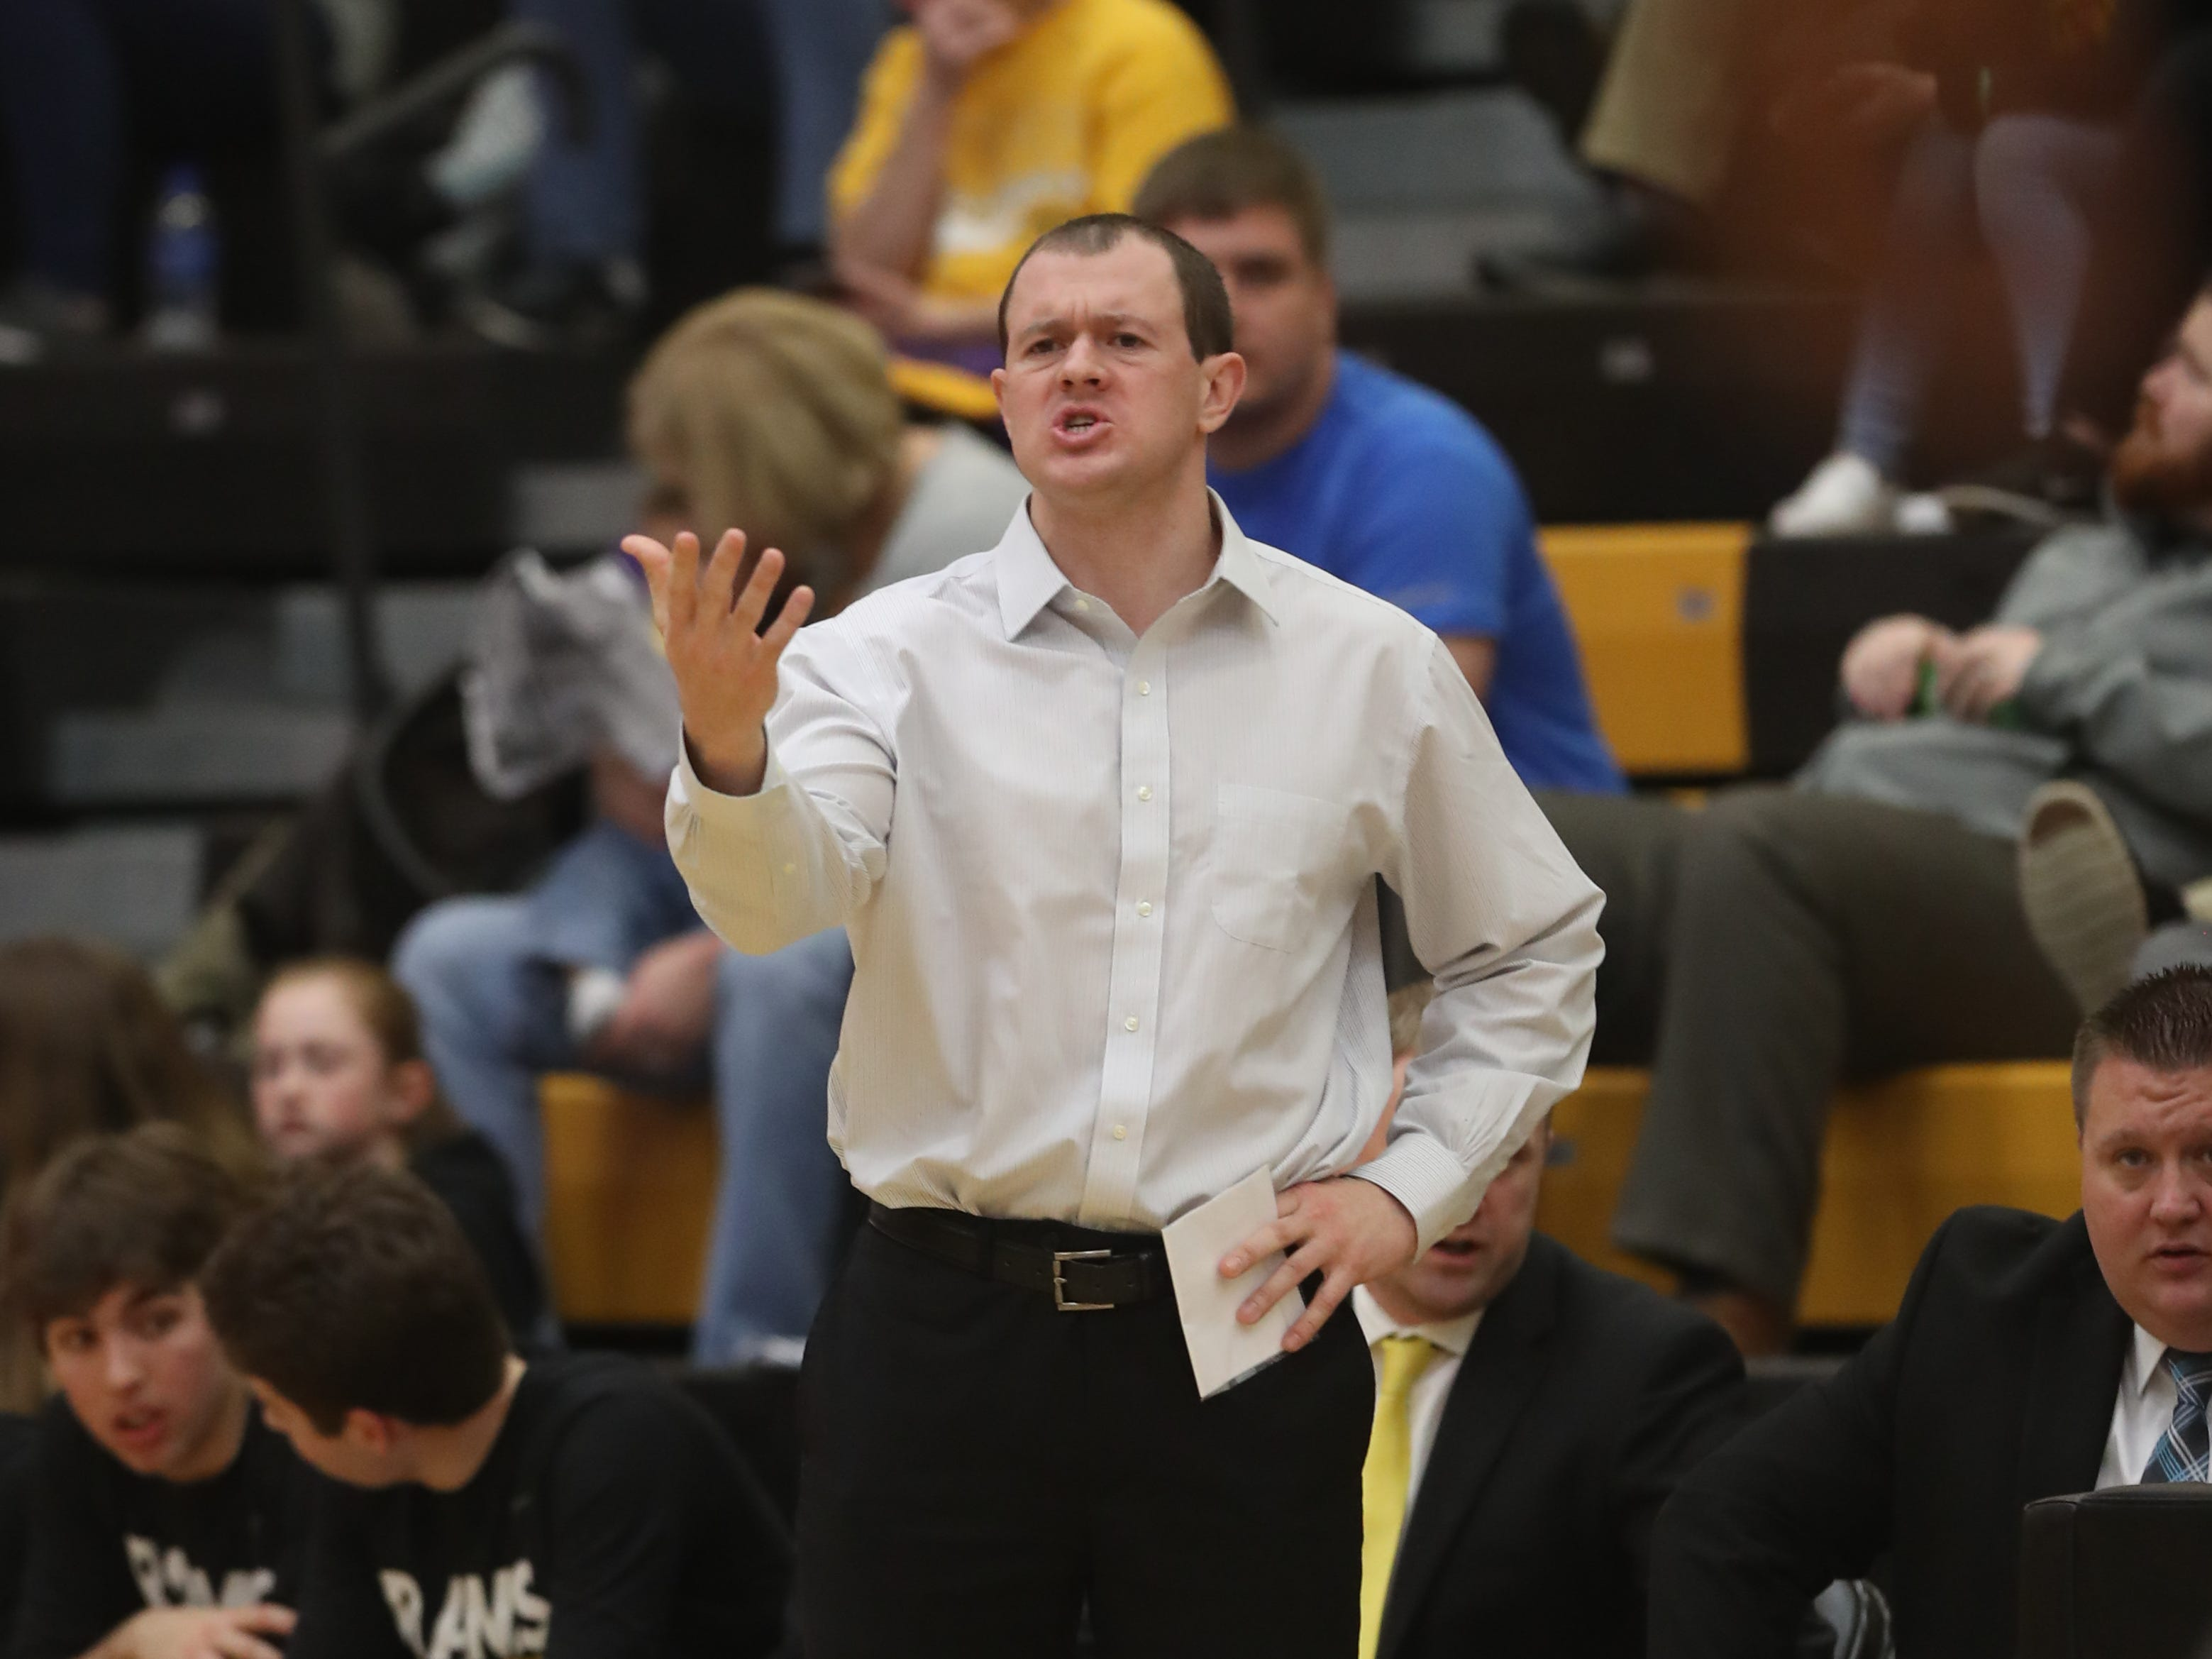 Southeast Polk Rams' Alan Jenkins watches his team play the Waukee Warriors during a game on Feb. 1, 2019 at Southeast Polk High School.